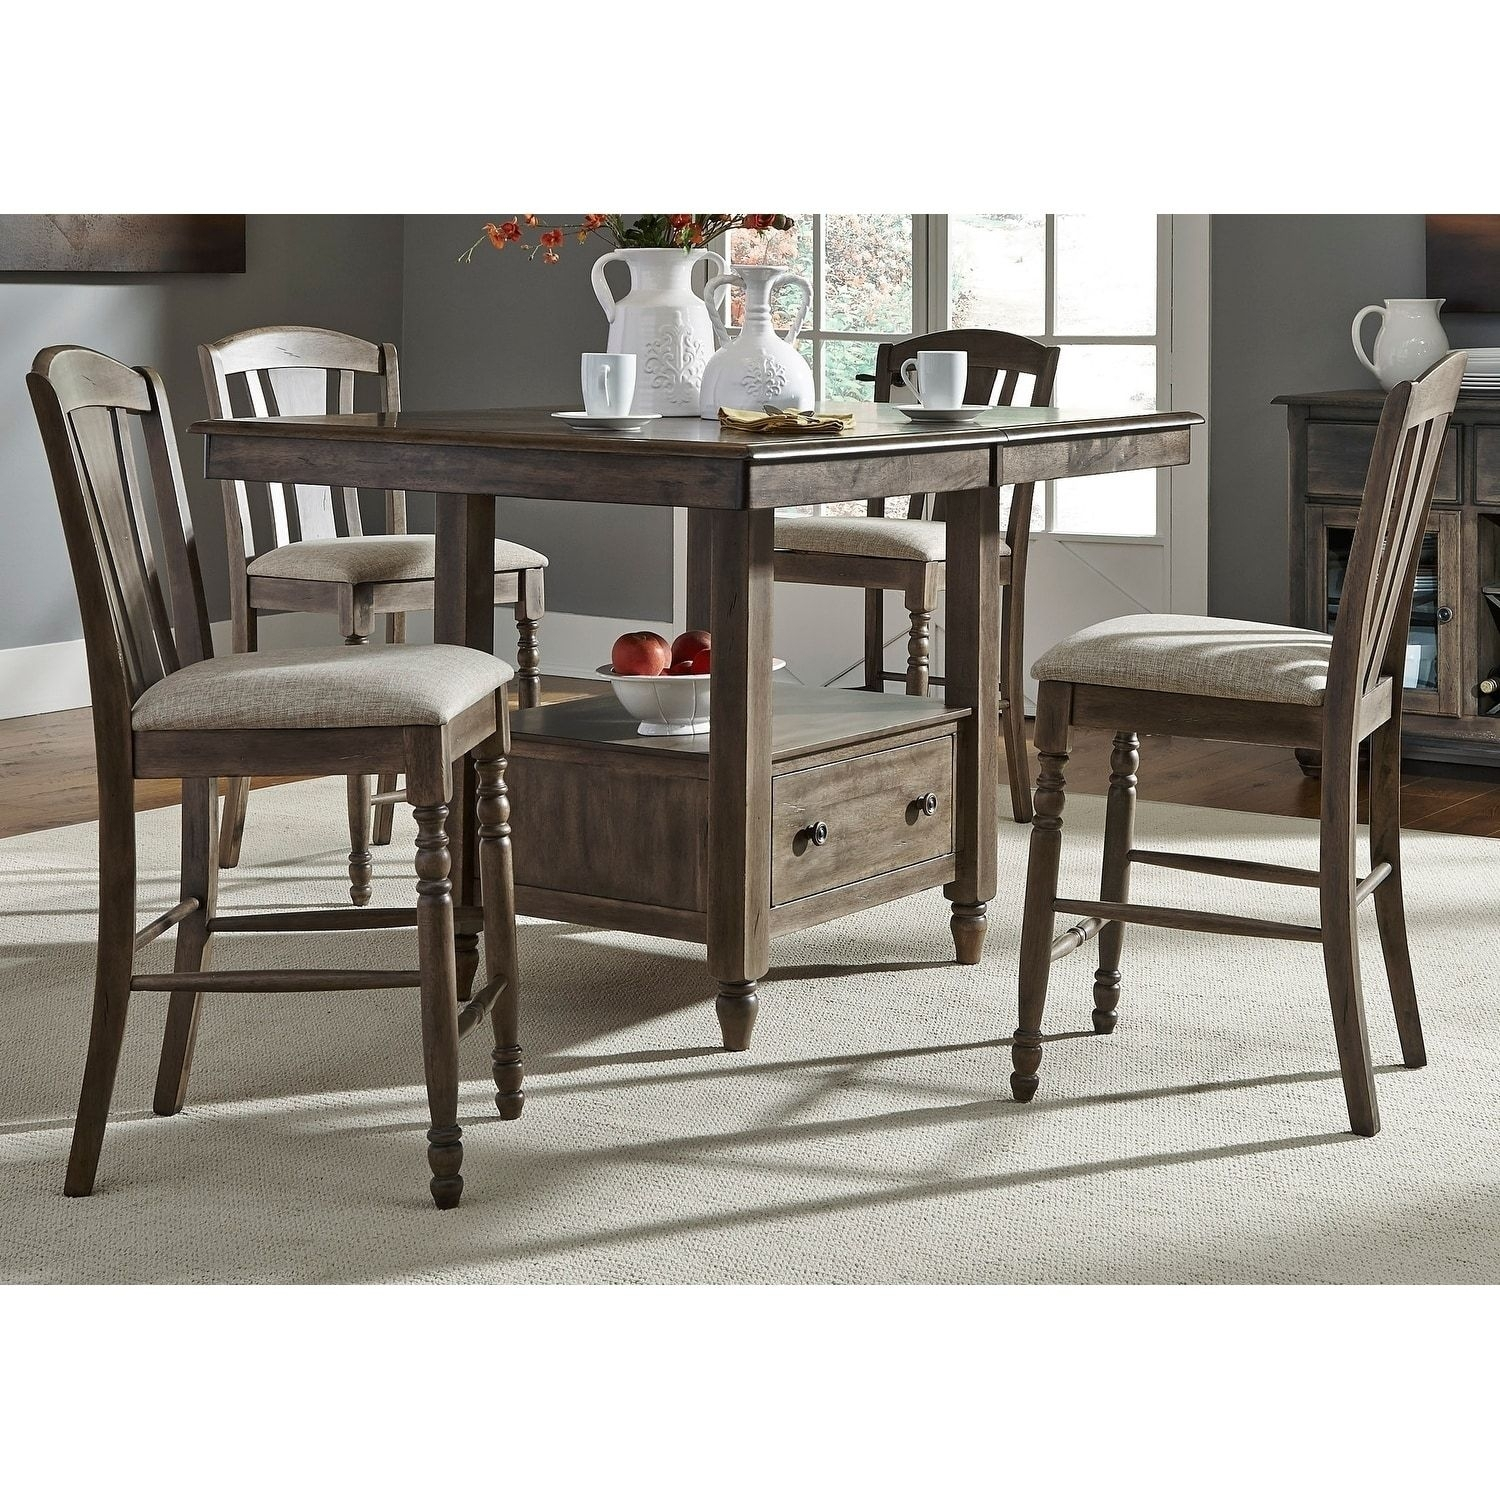 Liberty Candlewood Weather Grey 7 Piece Slat Back Gathering Dinette In Most Recent Combs 7 Piece Dining Sets With Mindy Slipcovered Chairs (View 16 of 20)